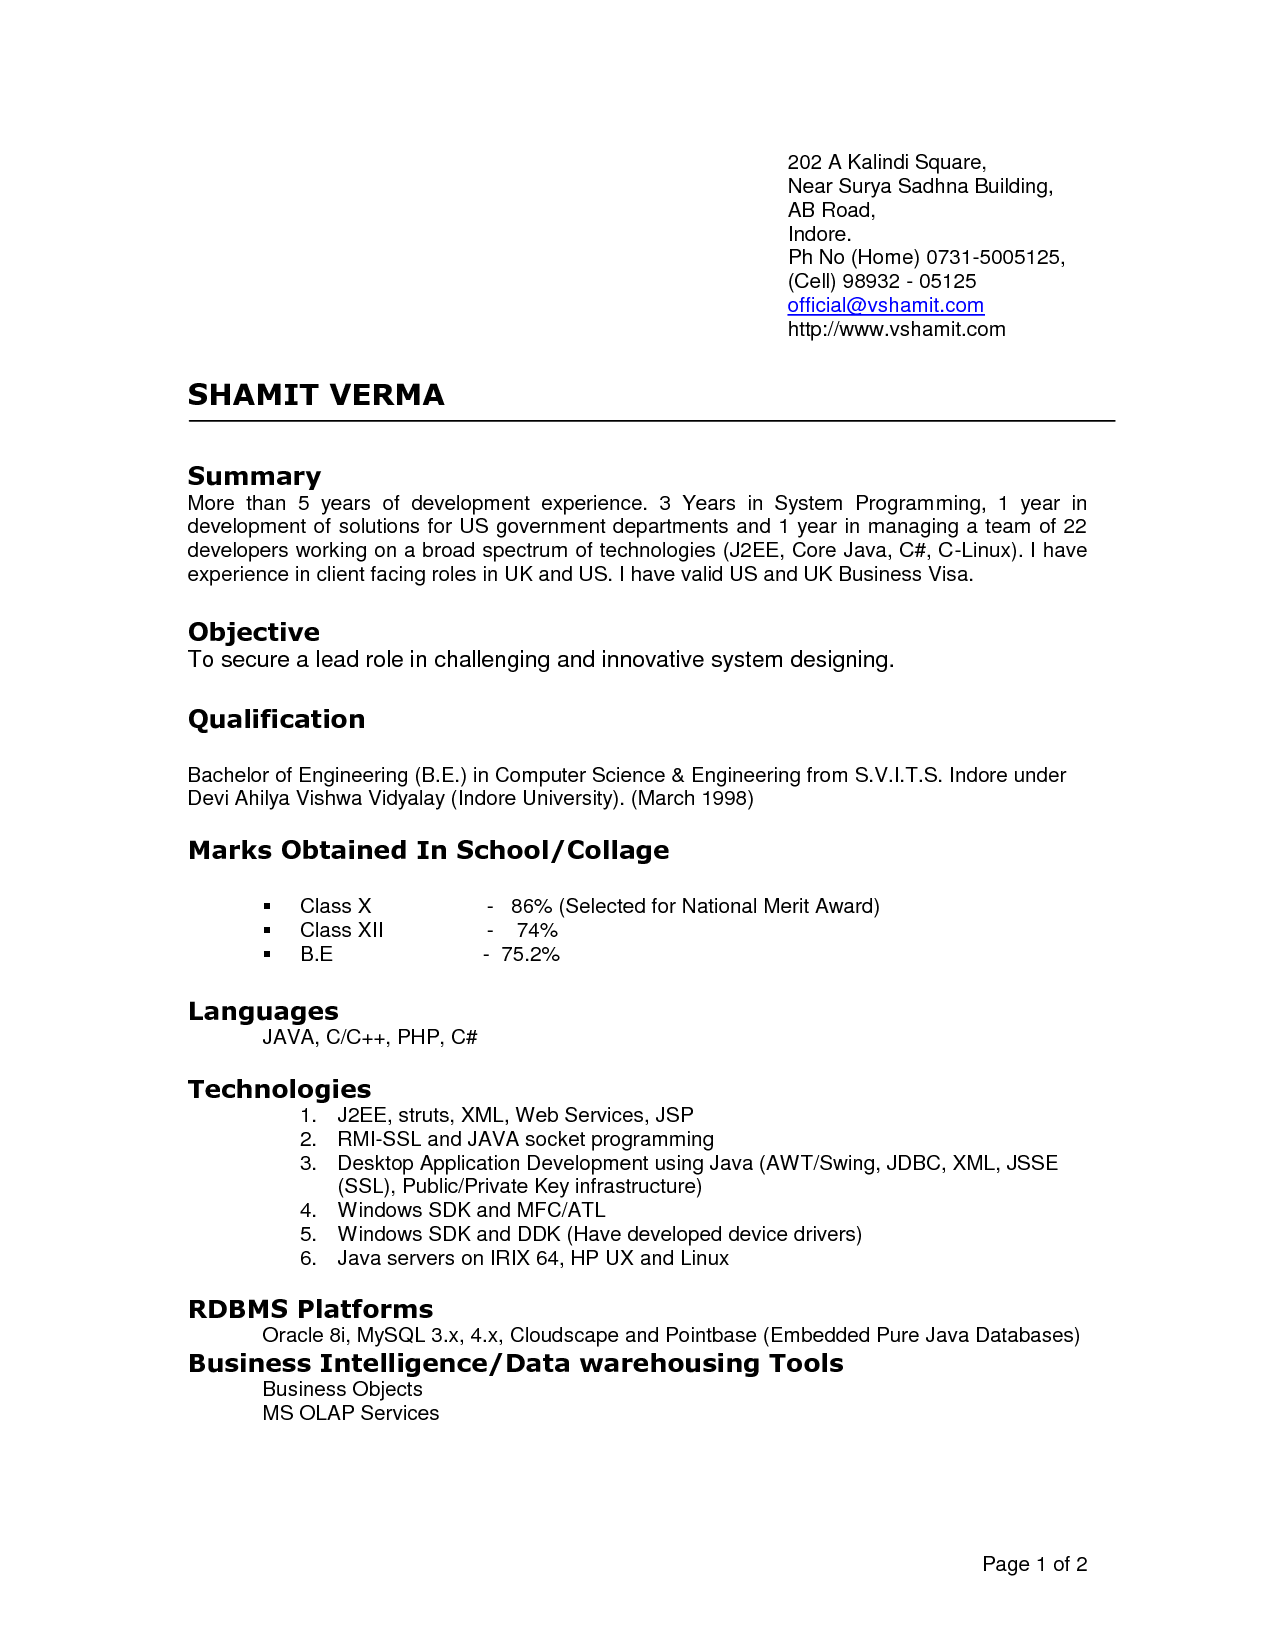 current resume format